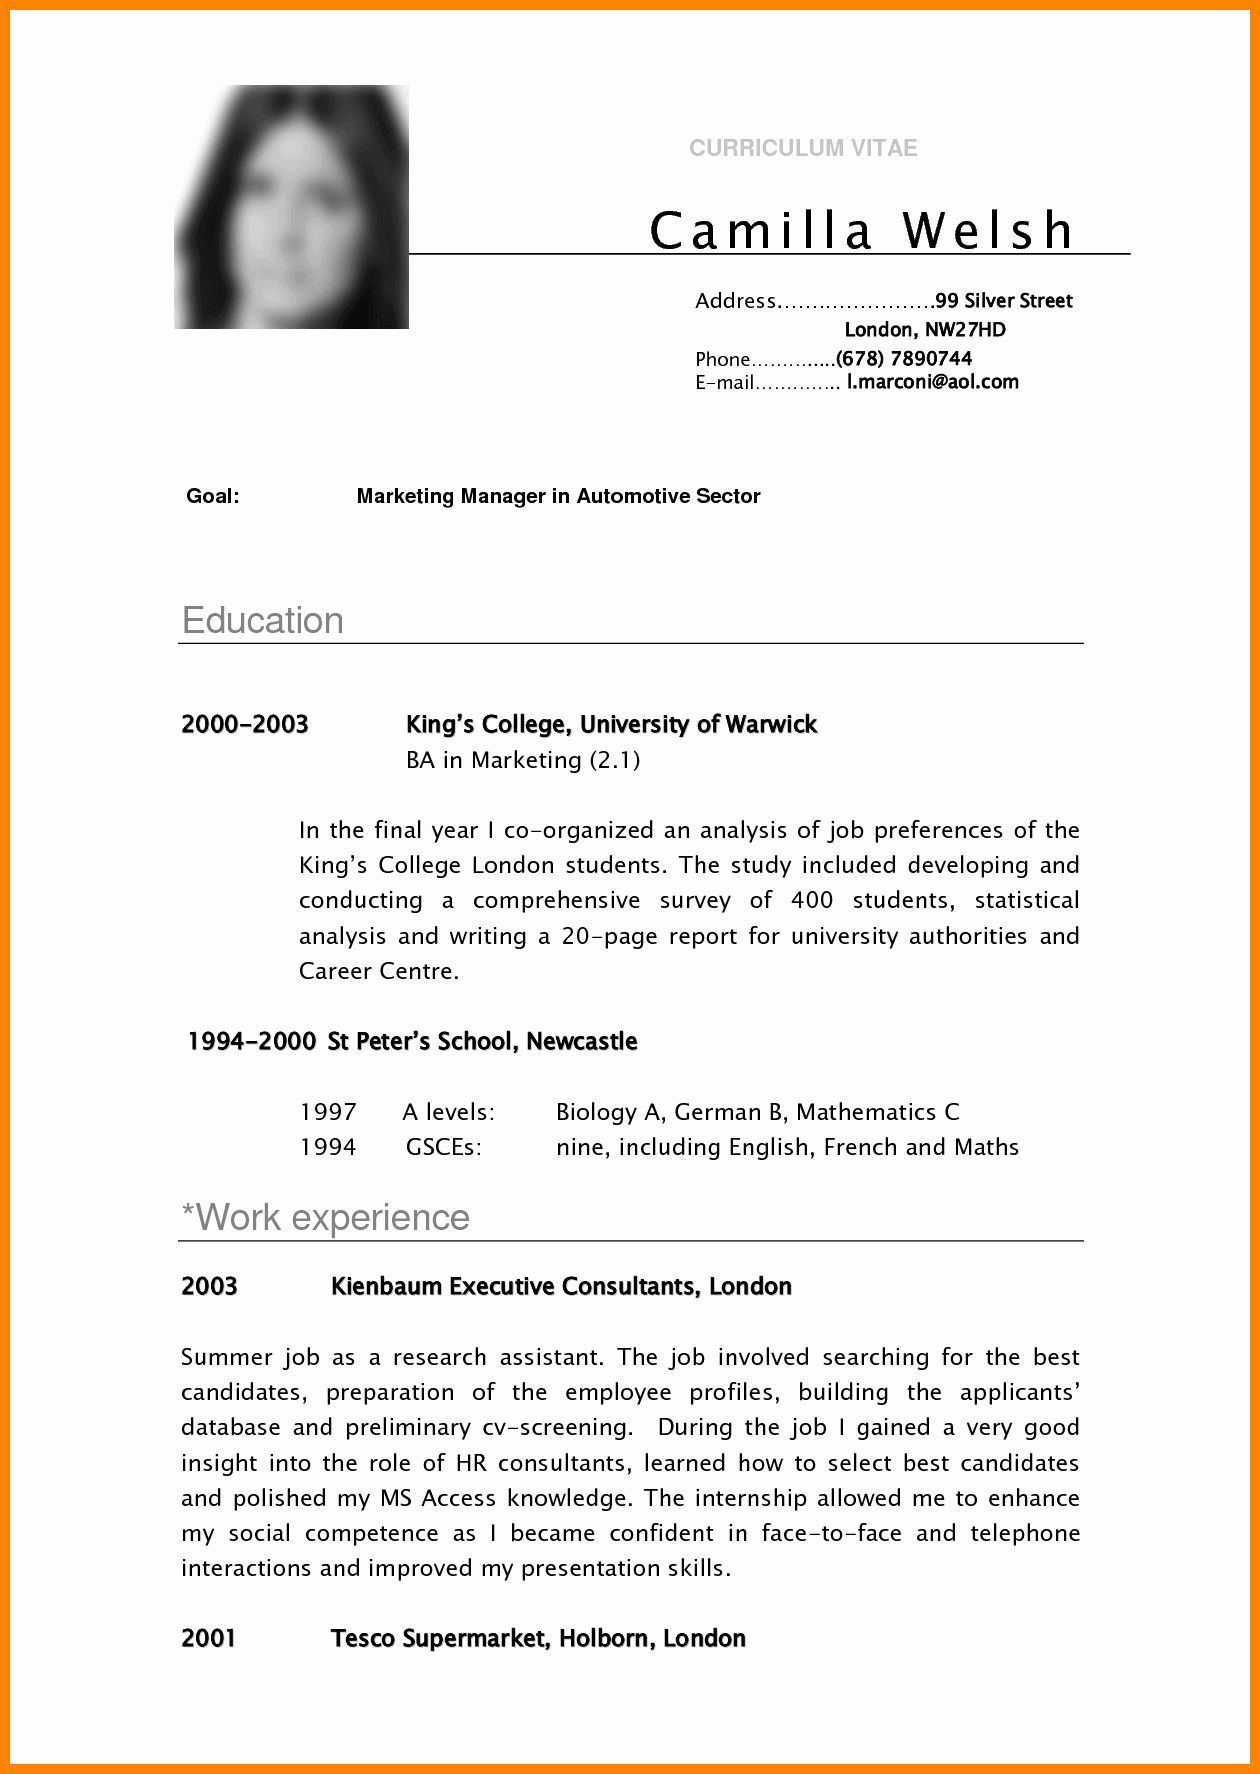 002 Shocking Resume Template For College Student Idea  Students Free Download Example With Little Work ExperienceFull